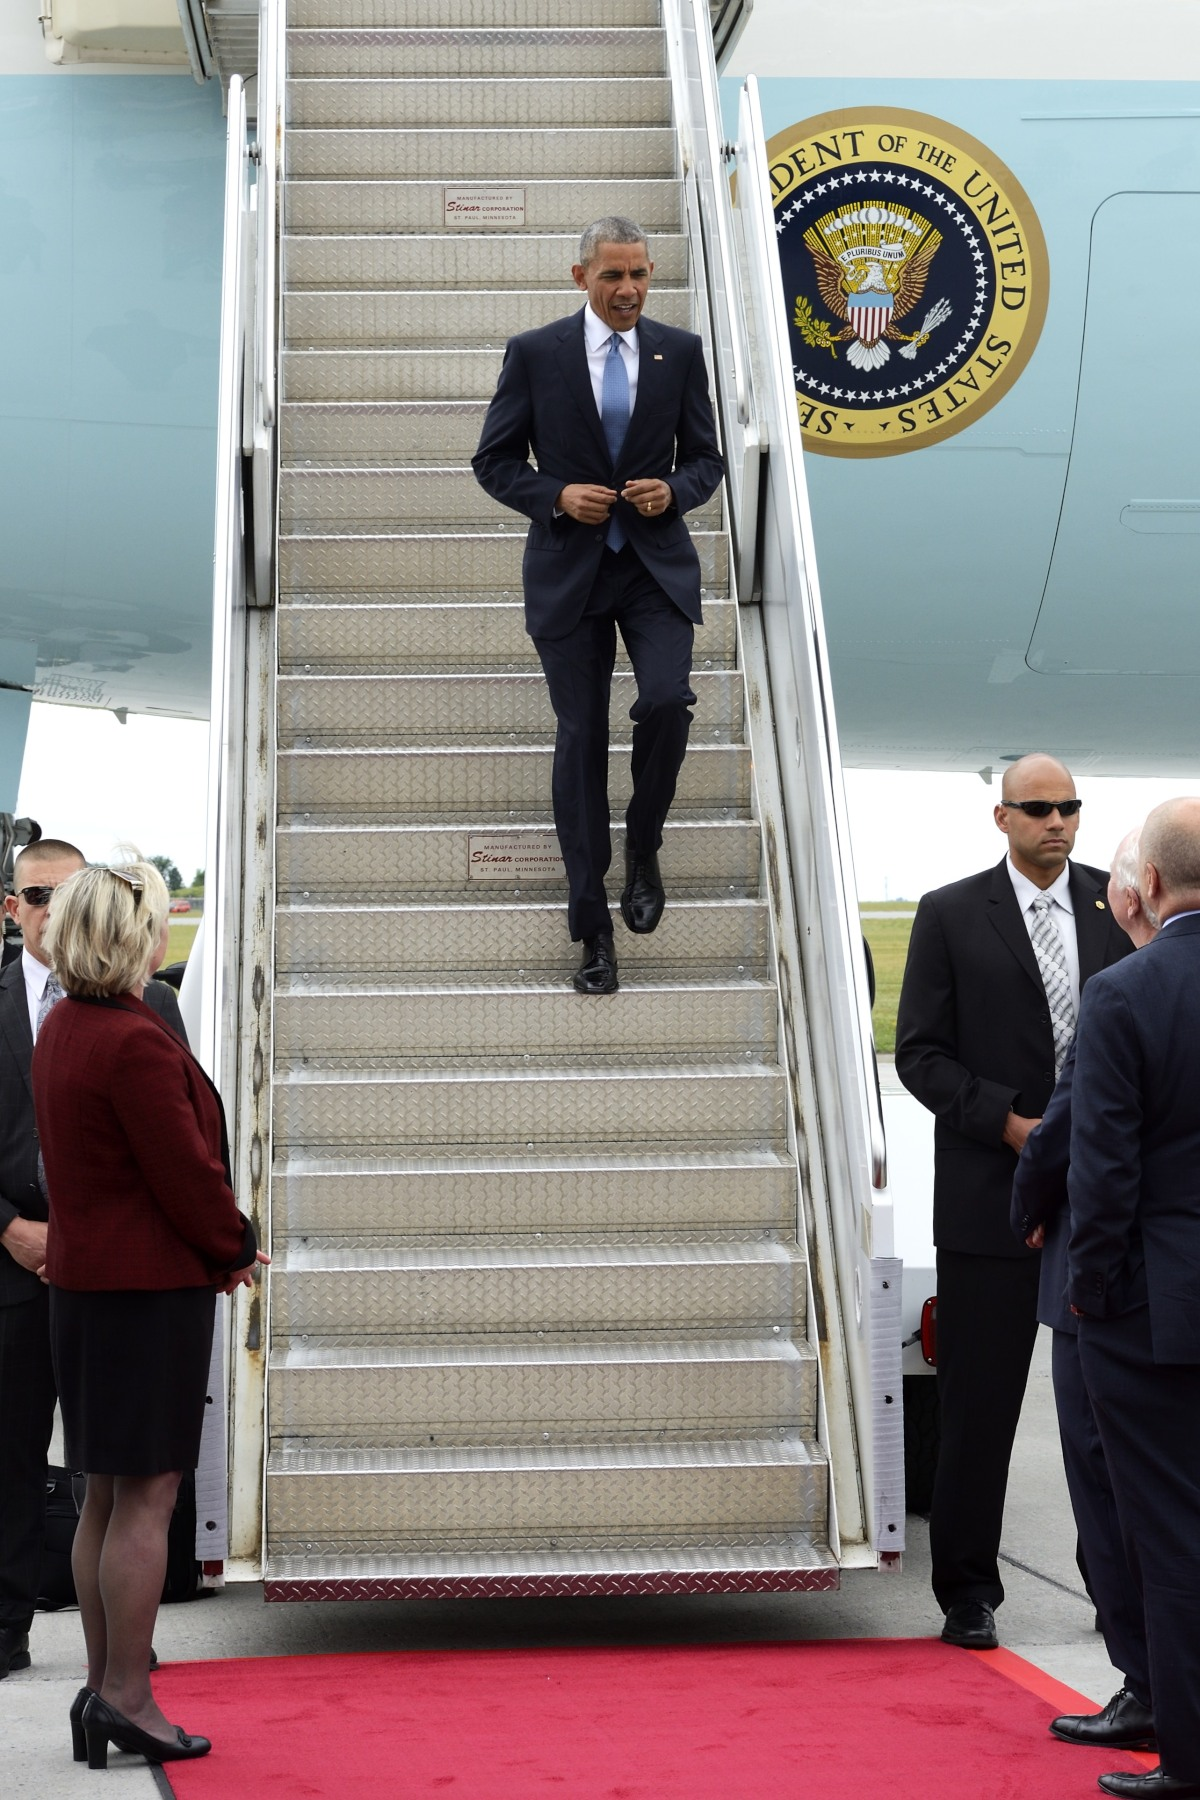 President Obama was greeted at the bottom of the steps by the Governor General.